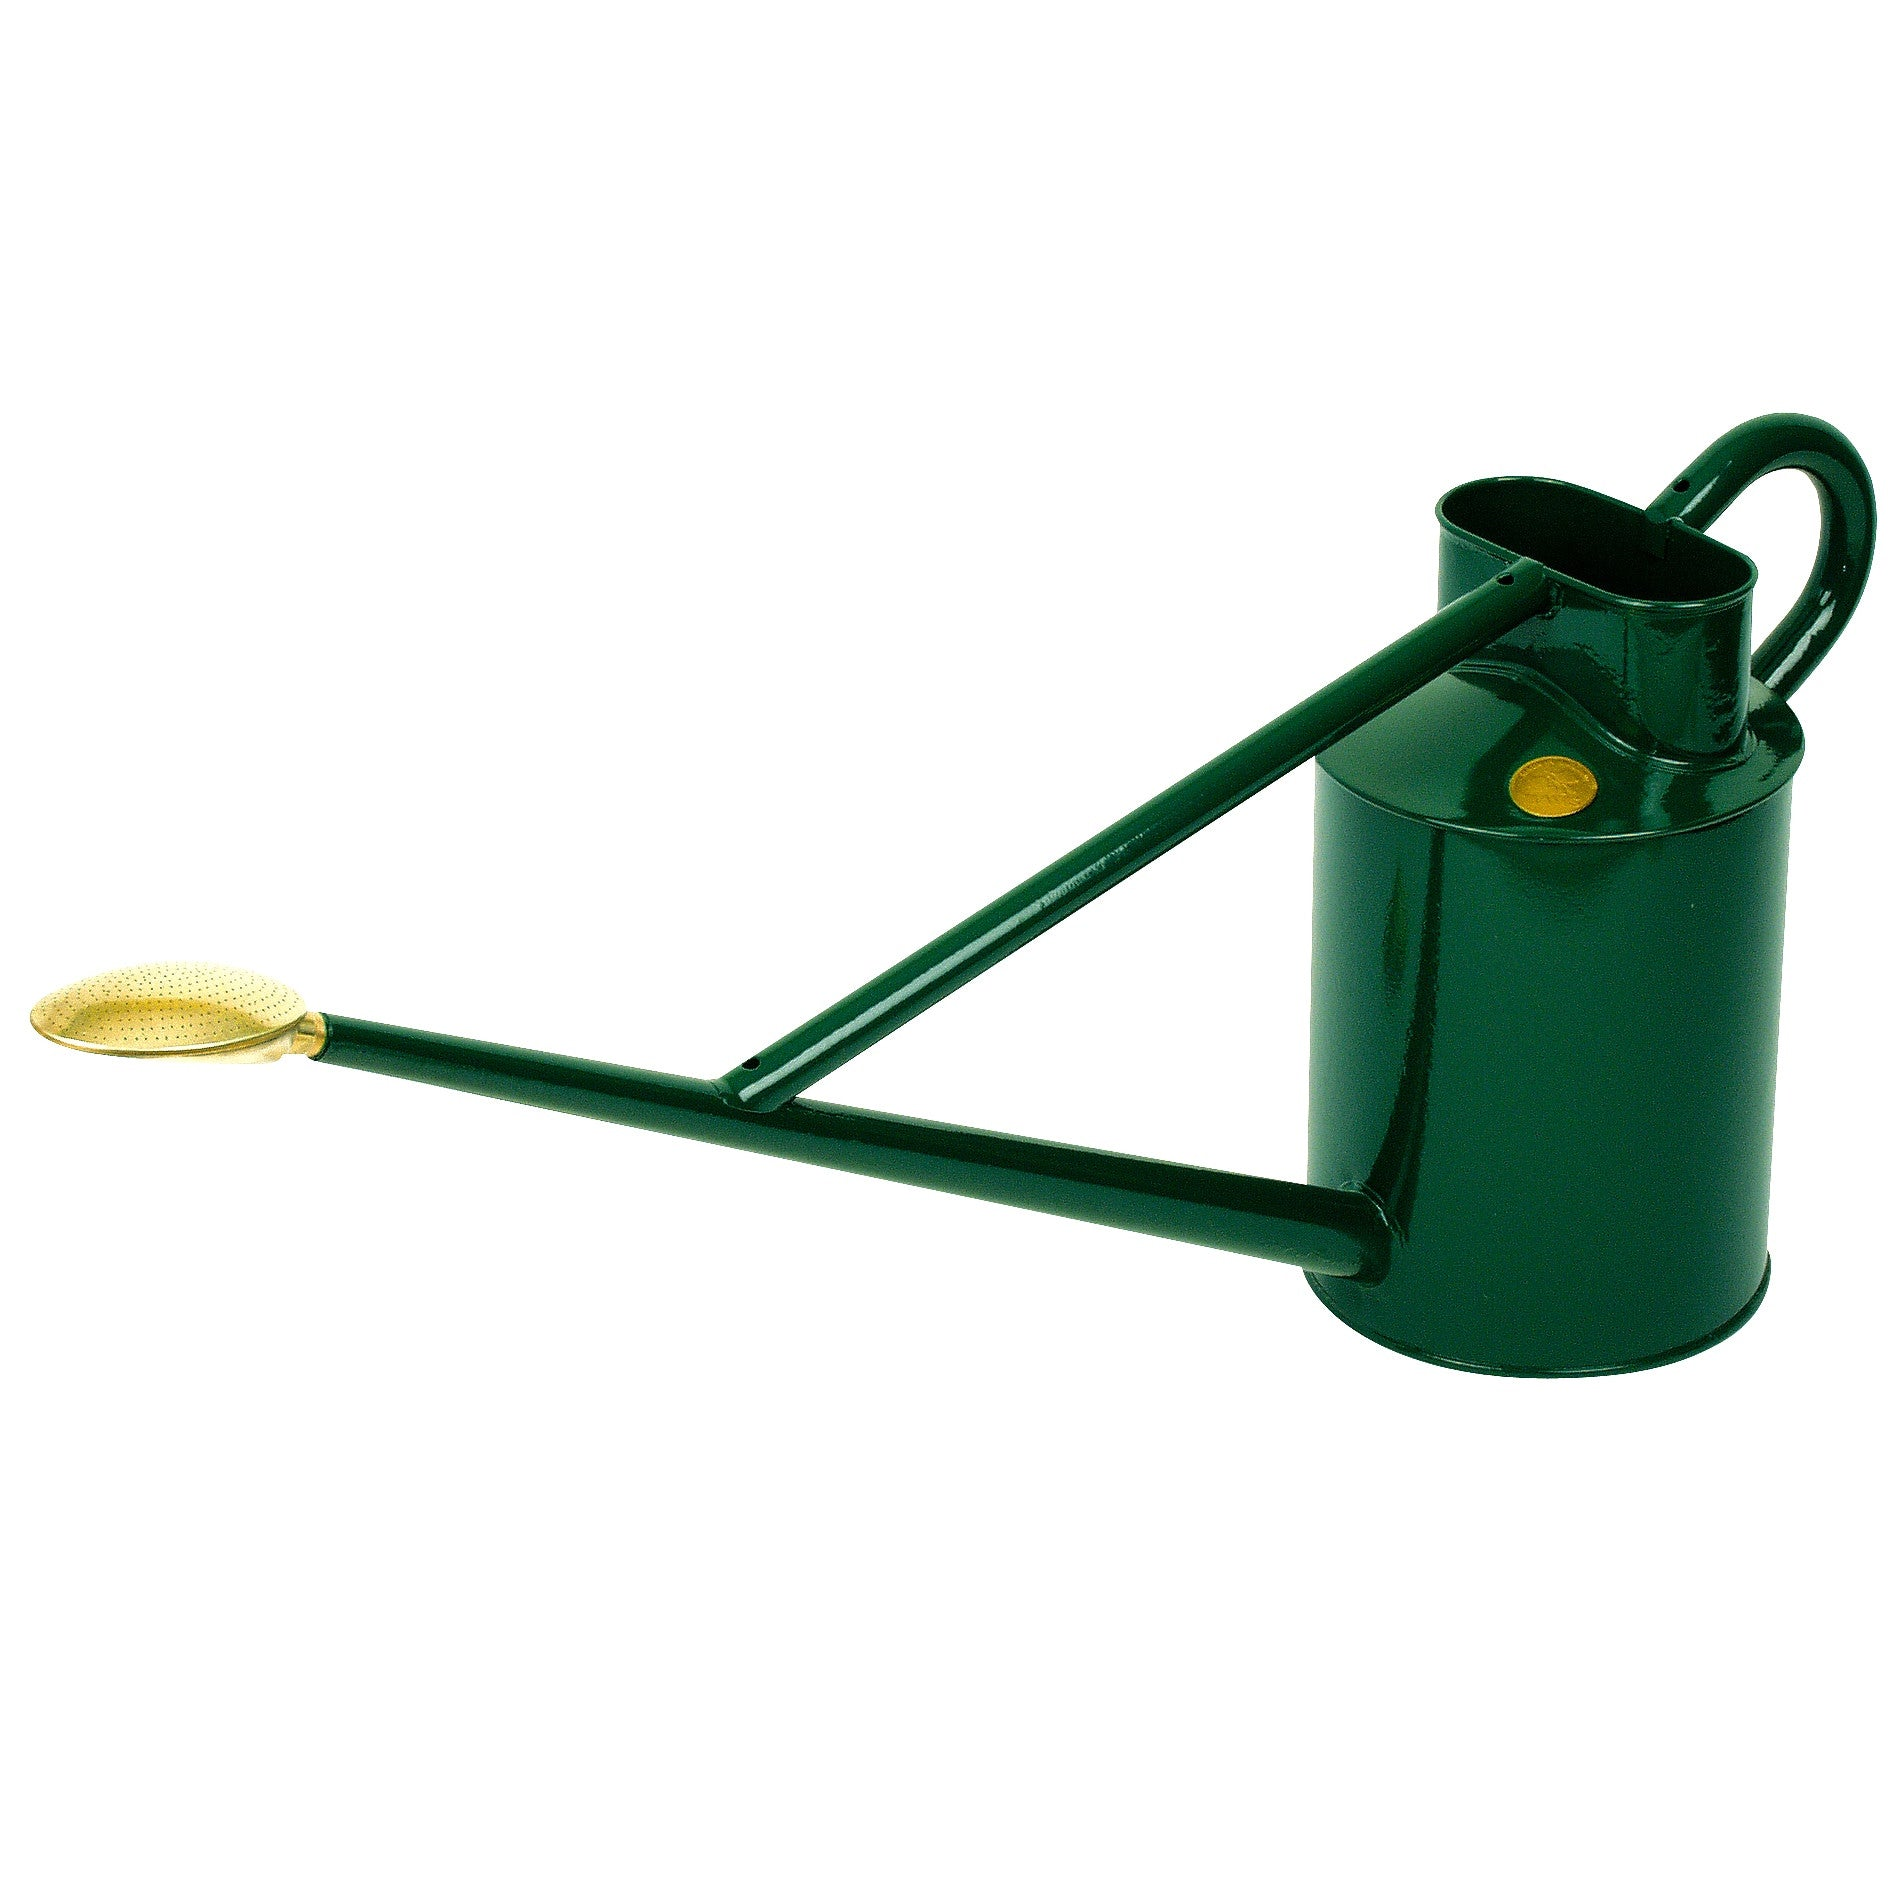 Haws 8.8 Litre Professional Long Reach Watering Can - The Potting Shed Garden Tools